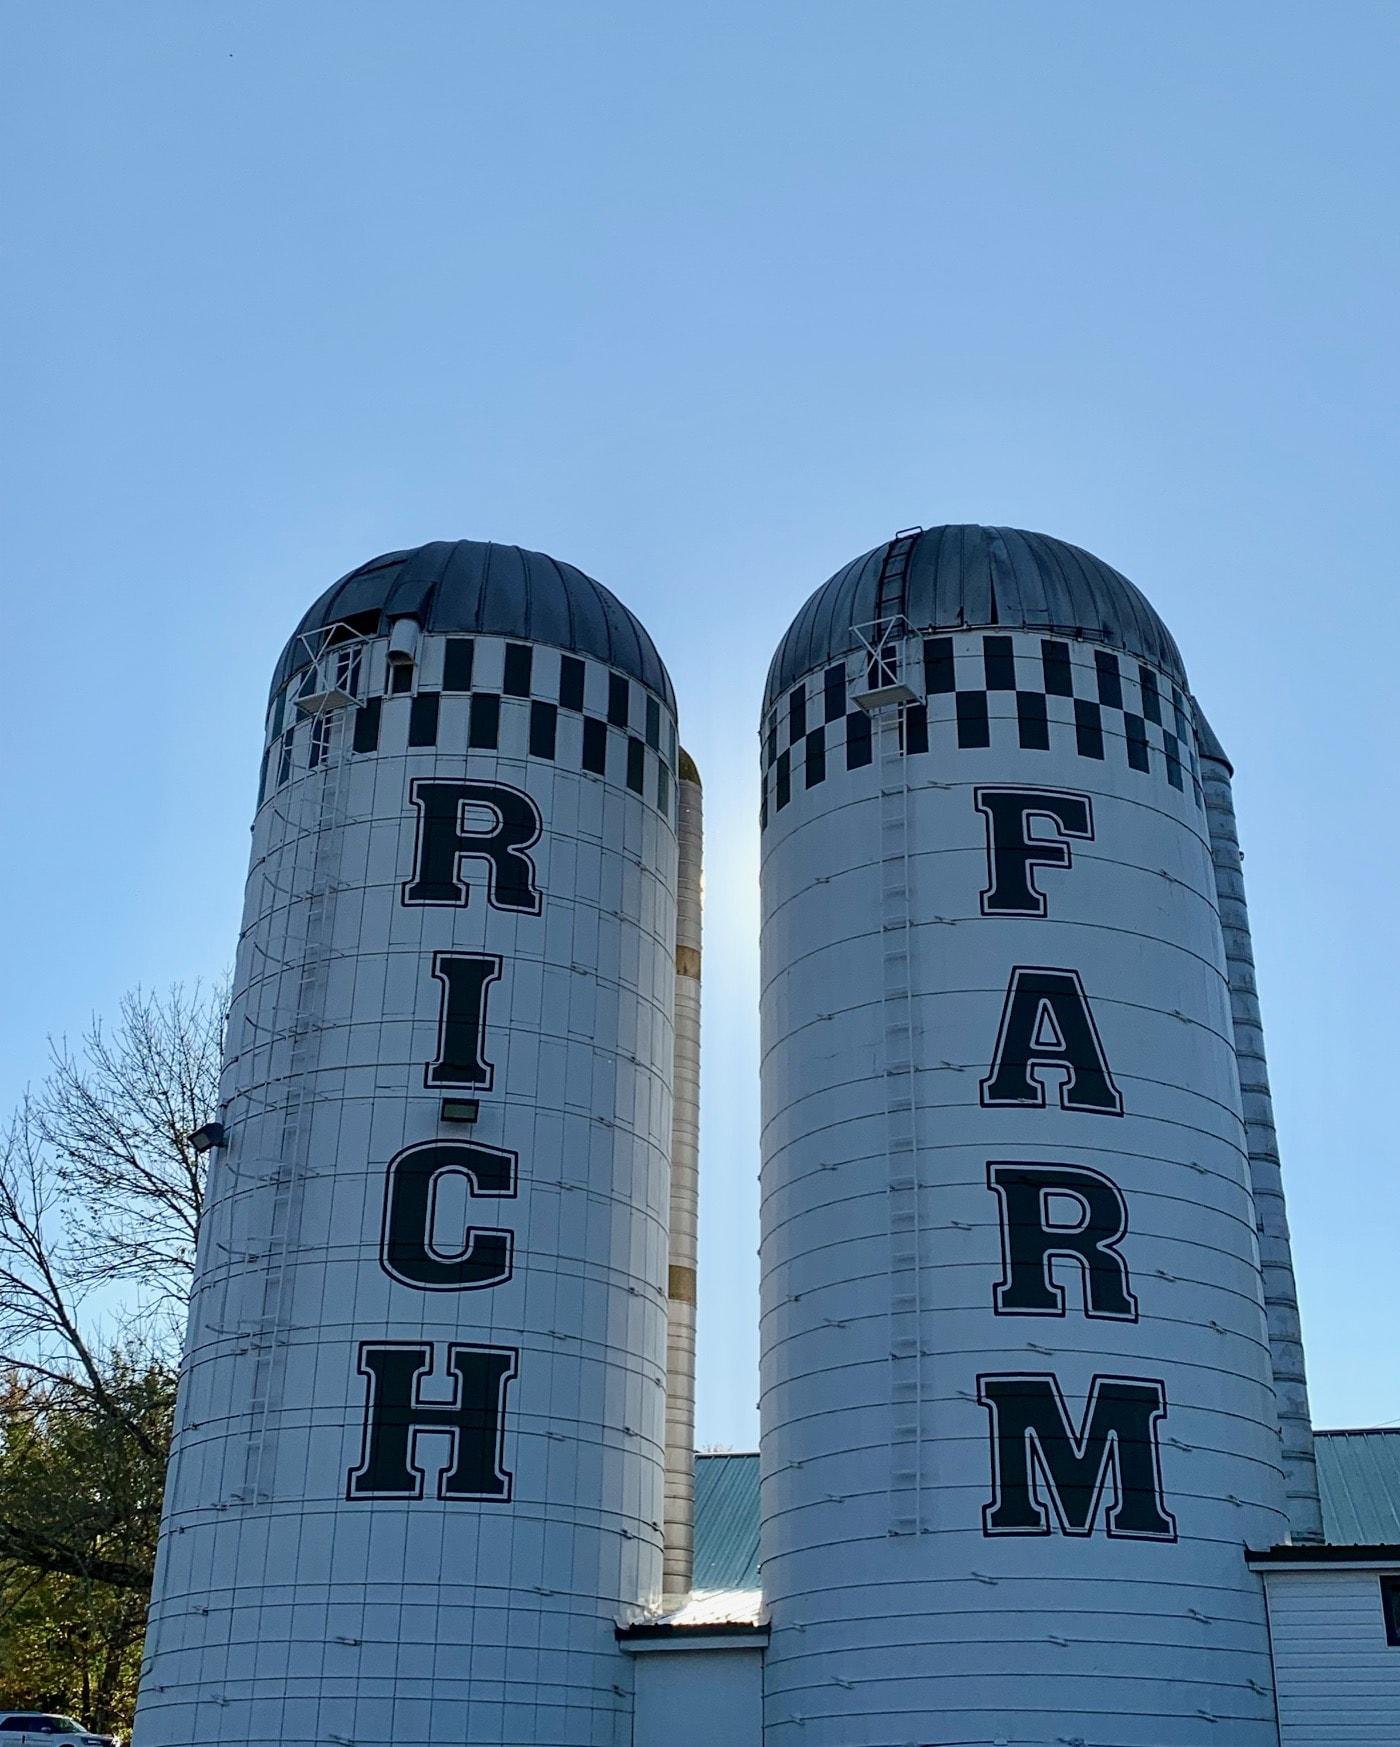 Rich Farm Ice Cream oxford ct